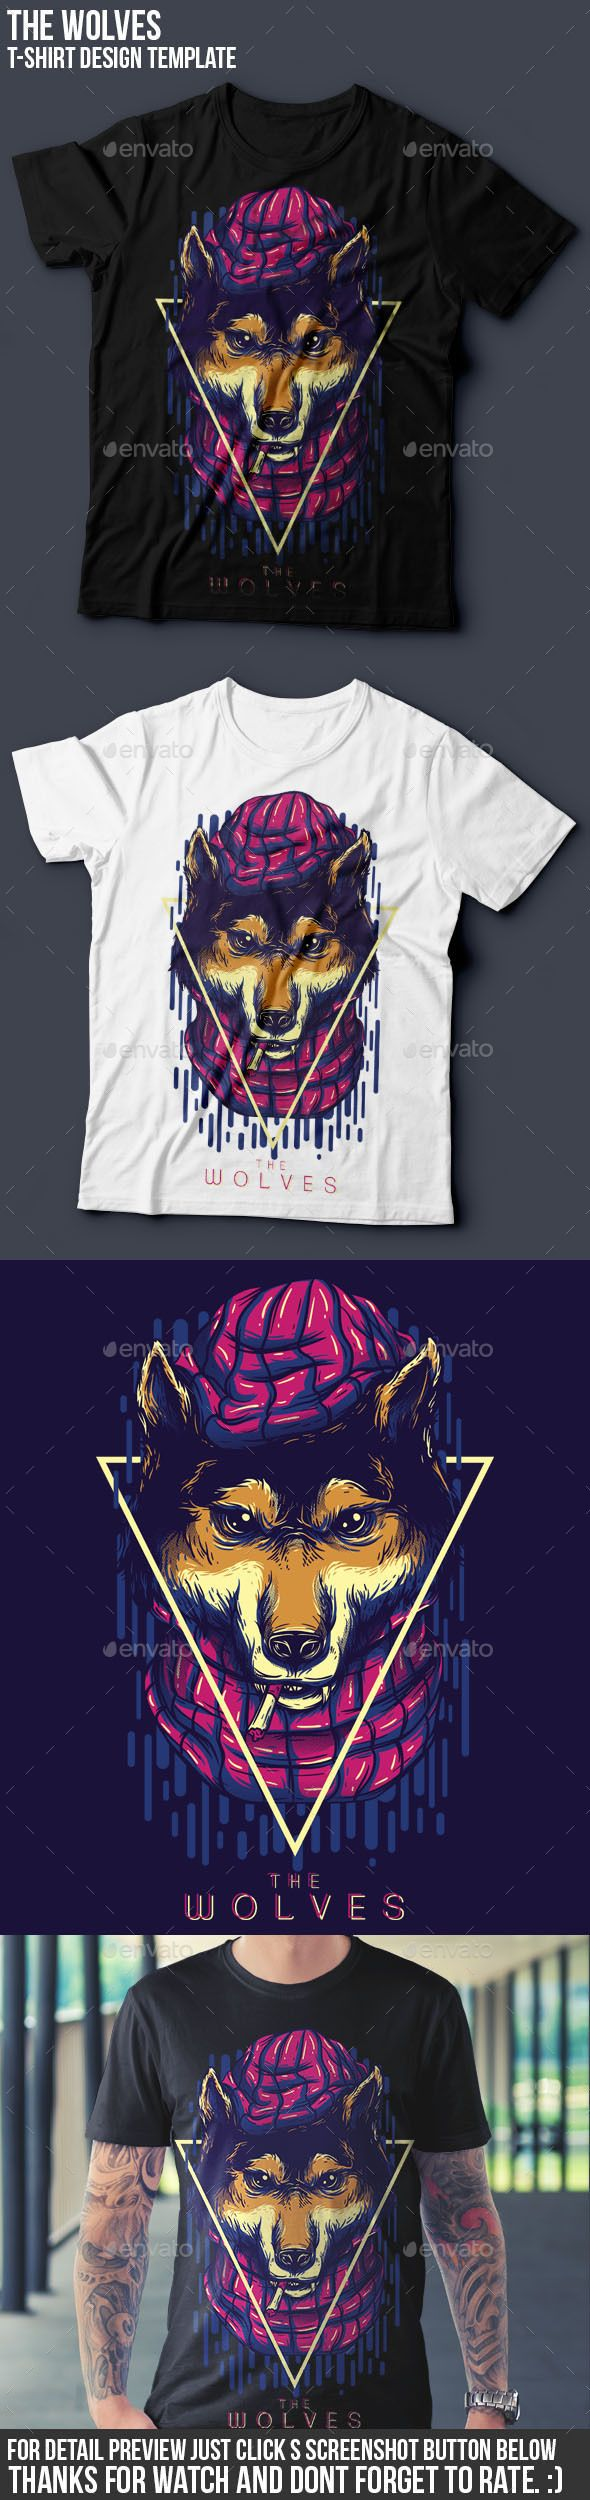 Shirt design template ai